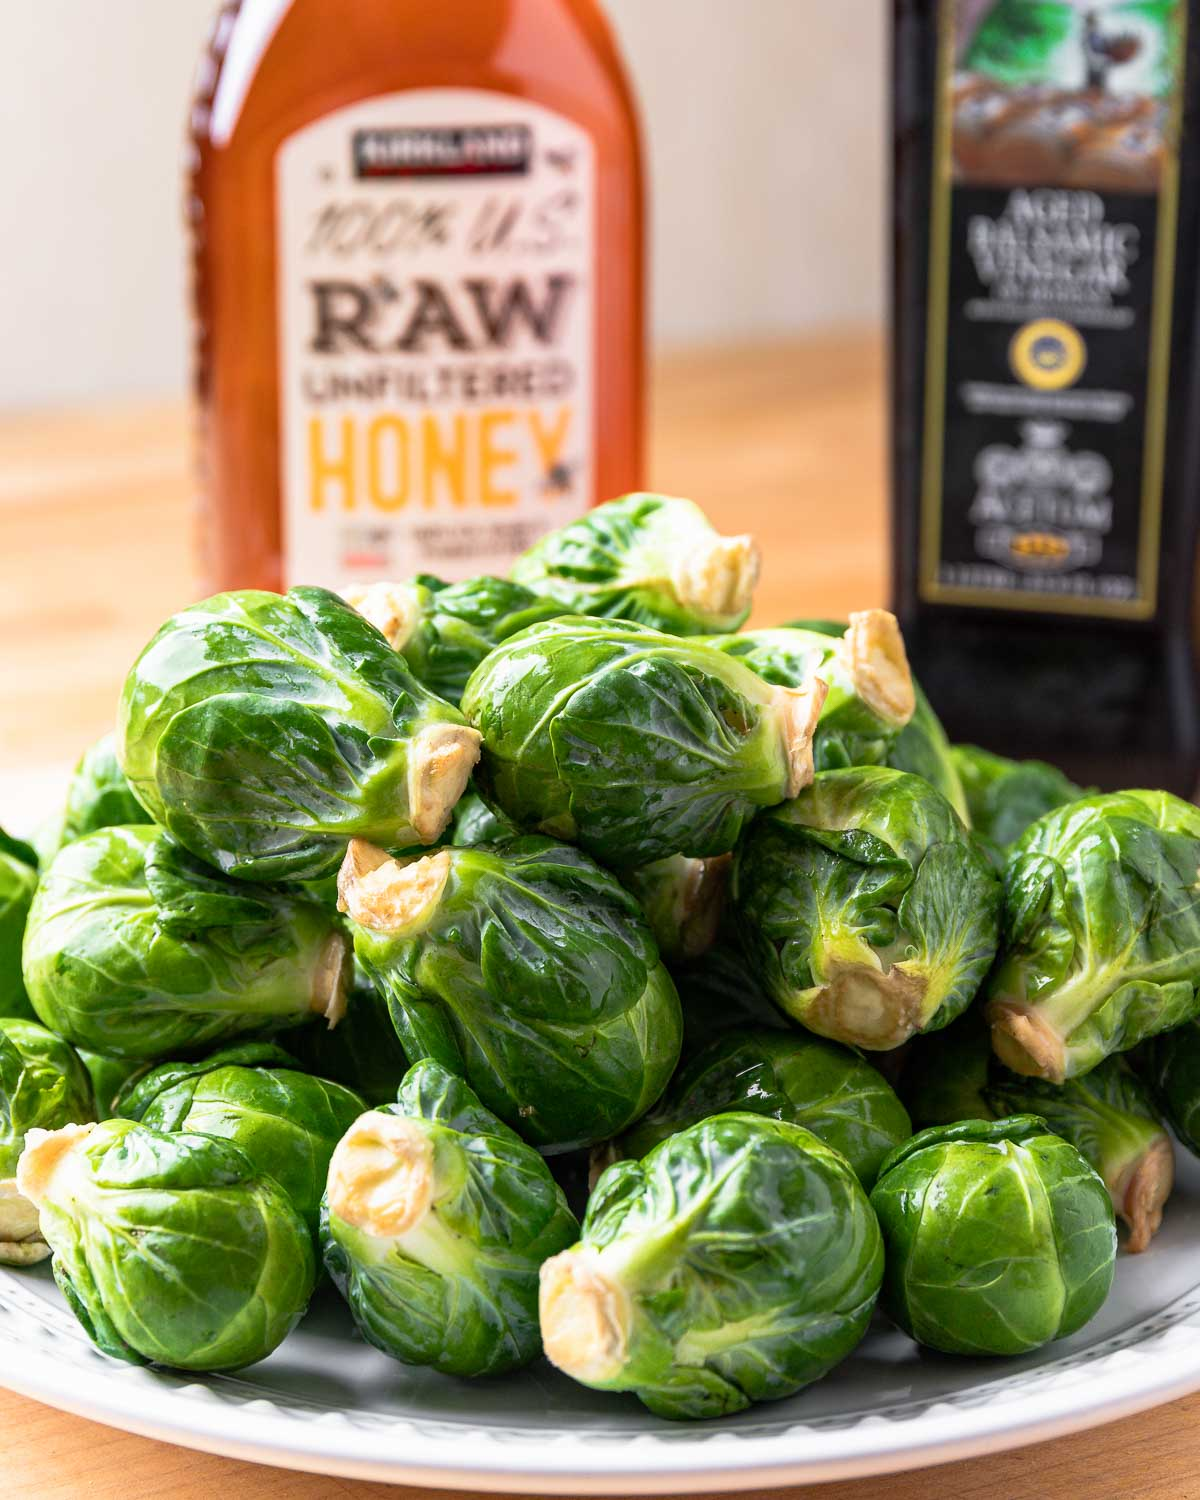 Ingredients shown: honey, balsamic vinegar, and plate of brussels sprouts.